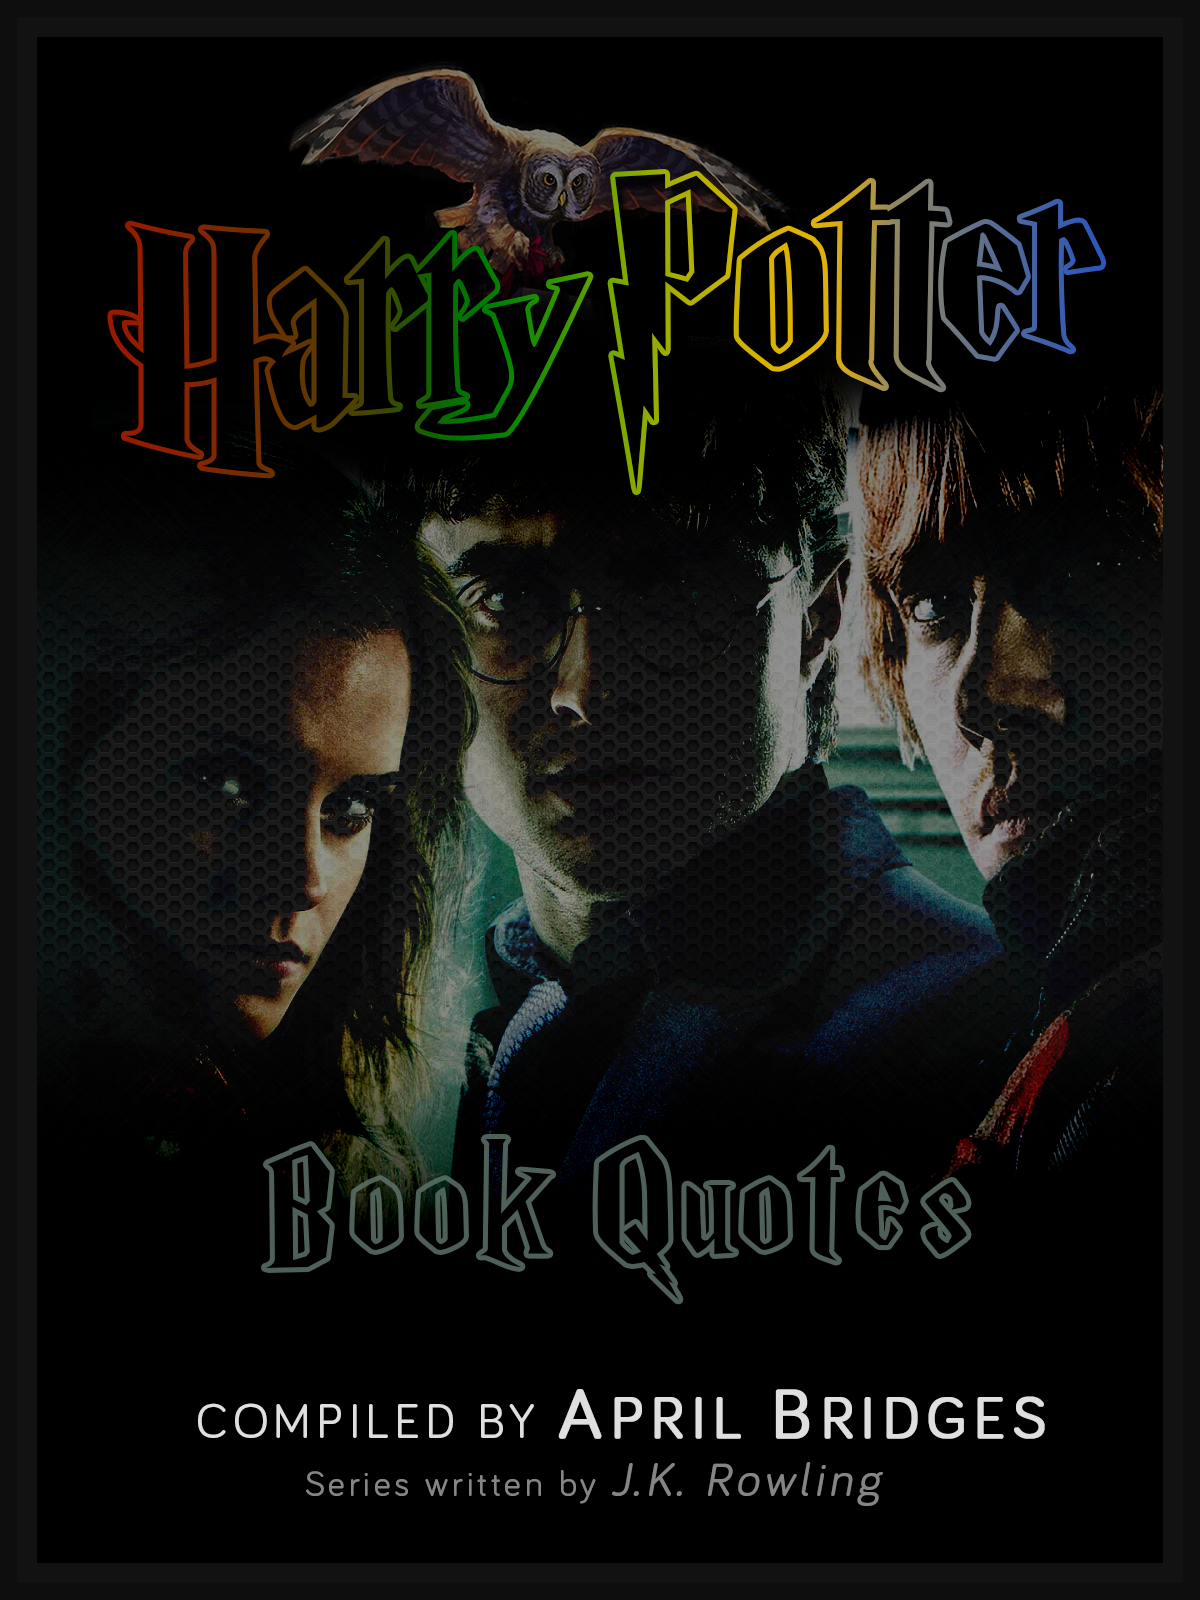 Book Cover Material Quotes ~ Book cover harry potter quotes by babygurl on